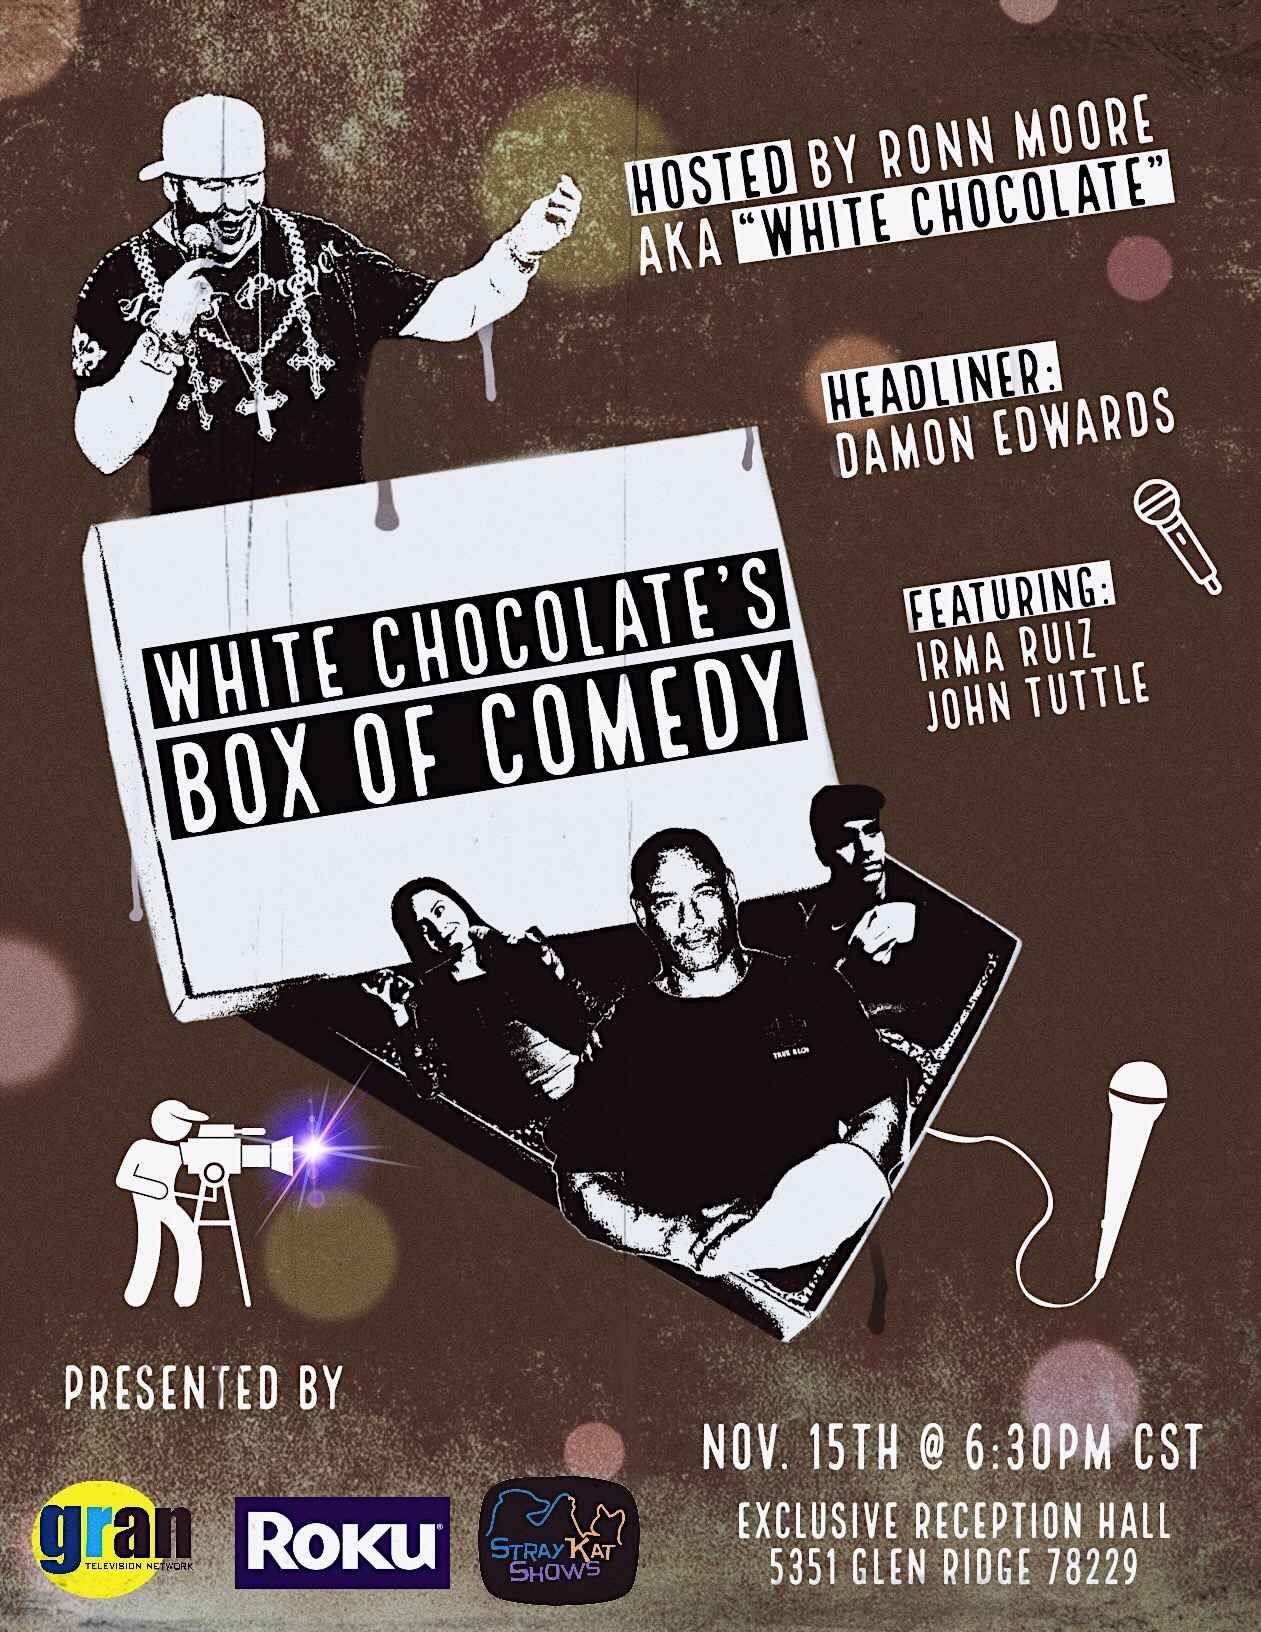 Box of Comedy Flyer 1